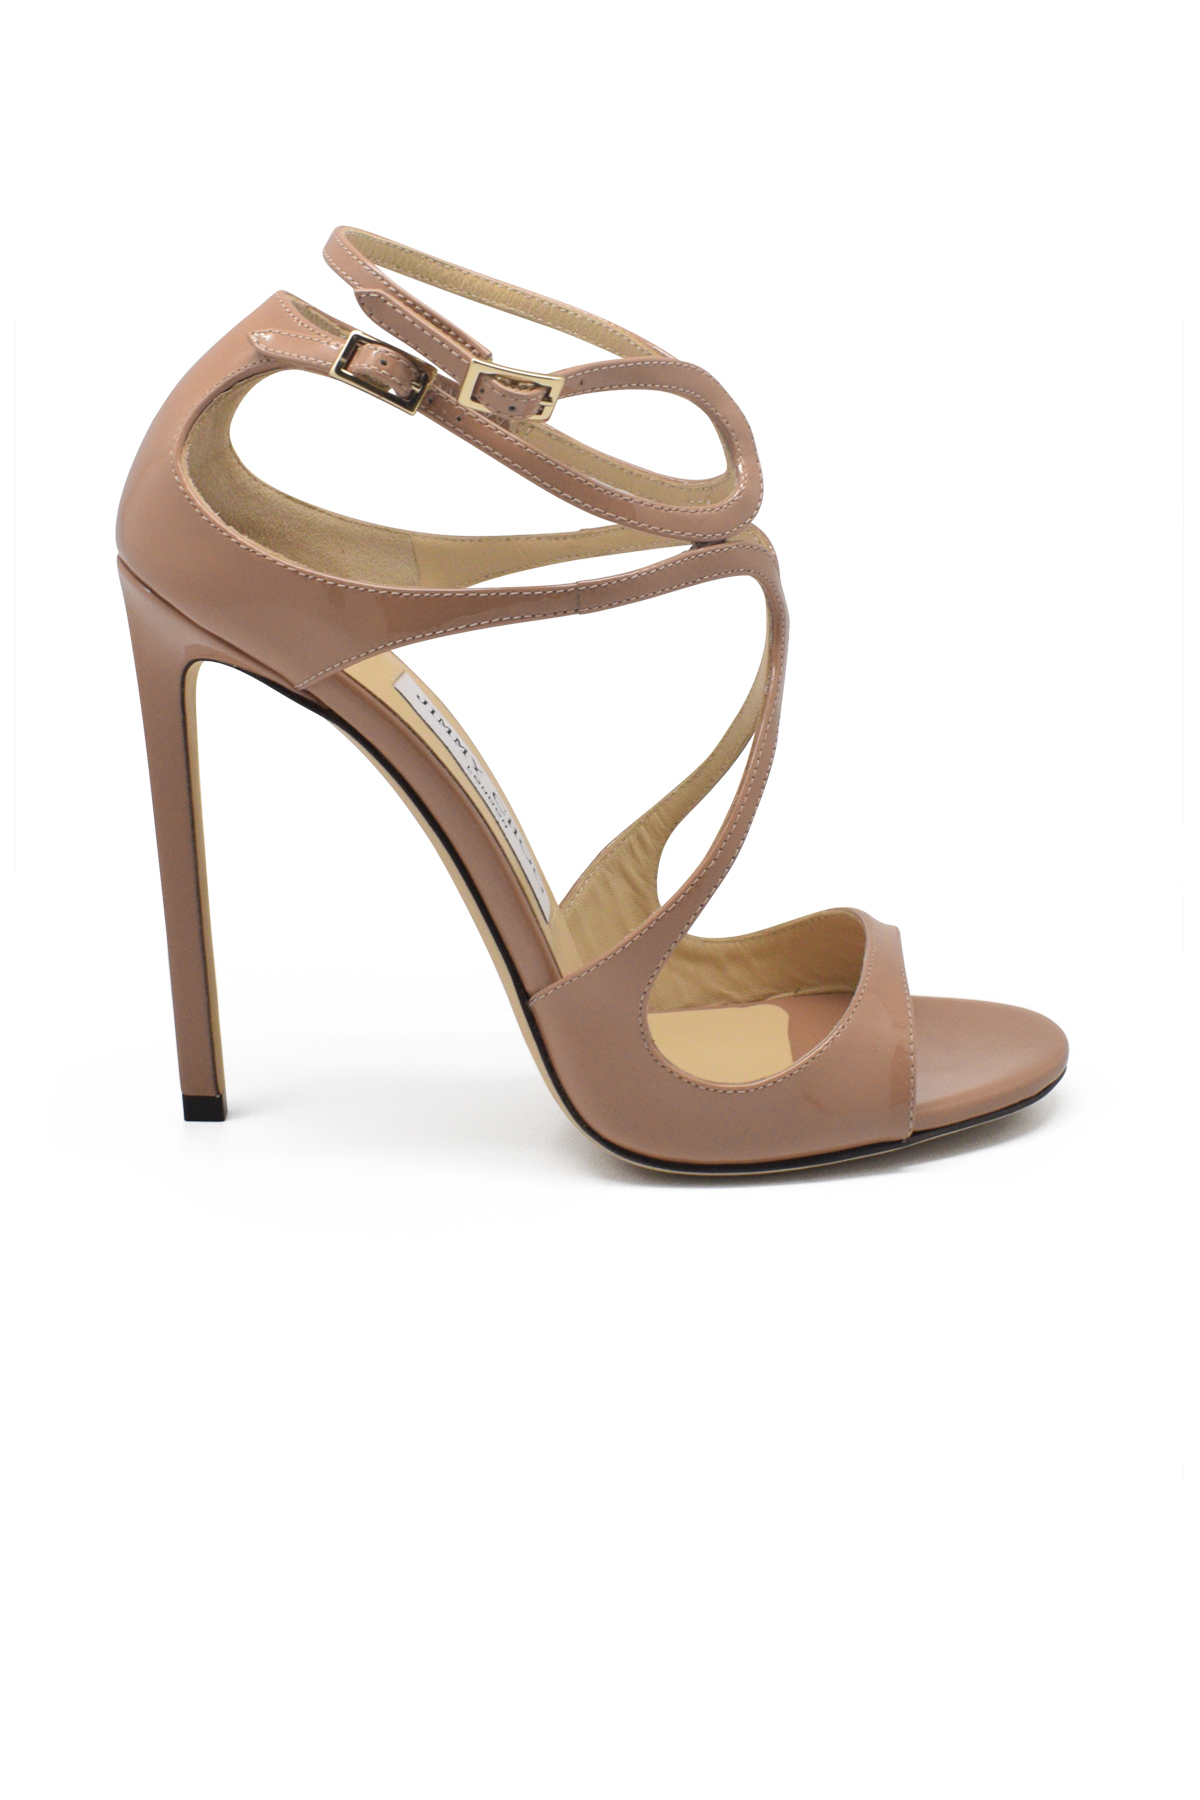 Jimmy Choo Lance sandals in nude patent